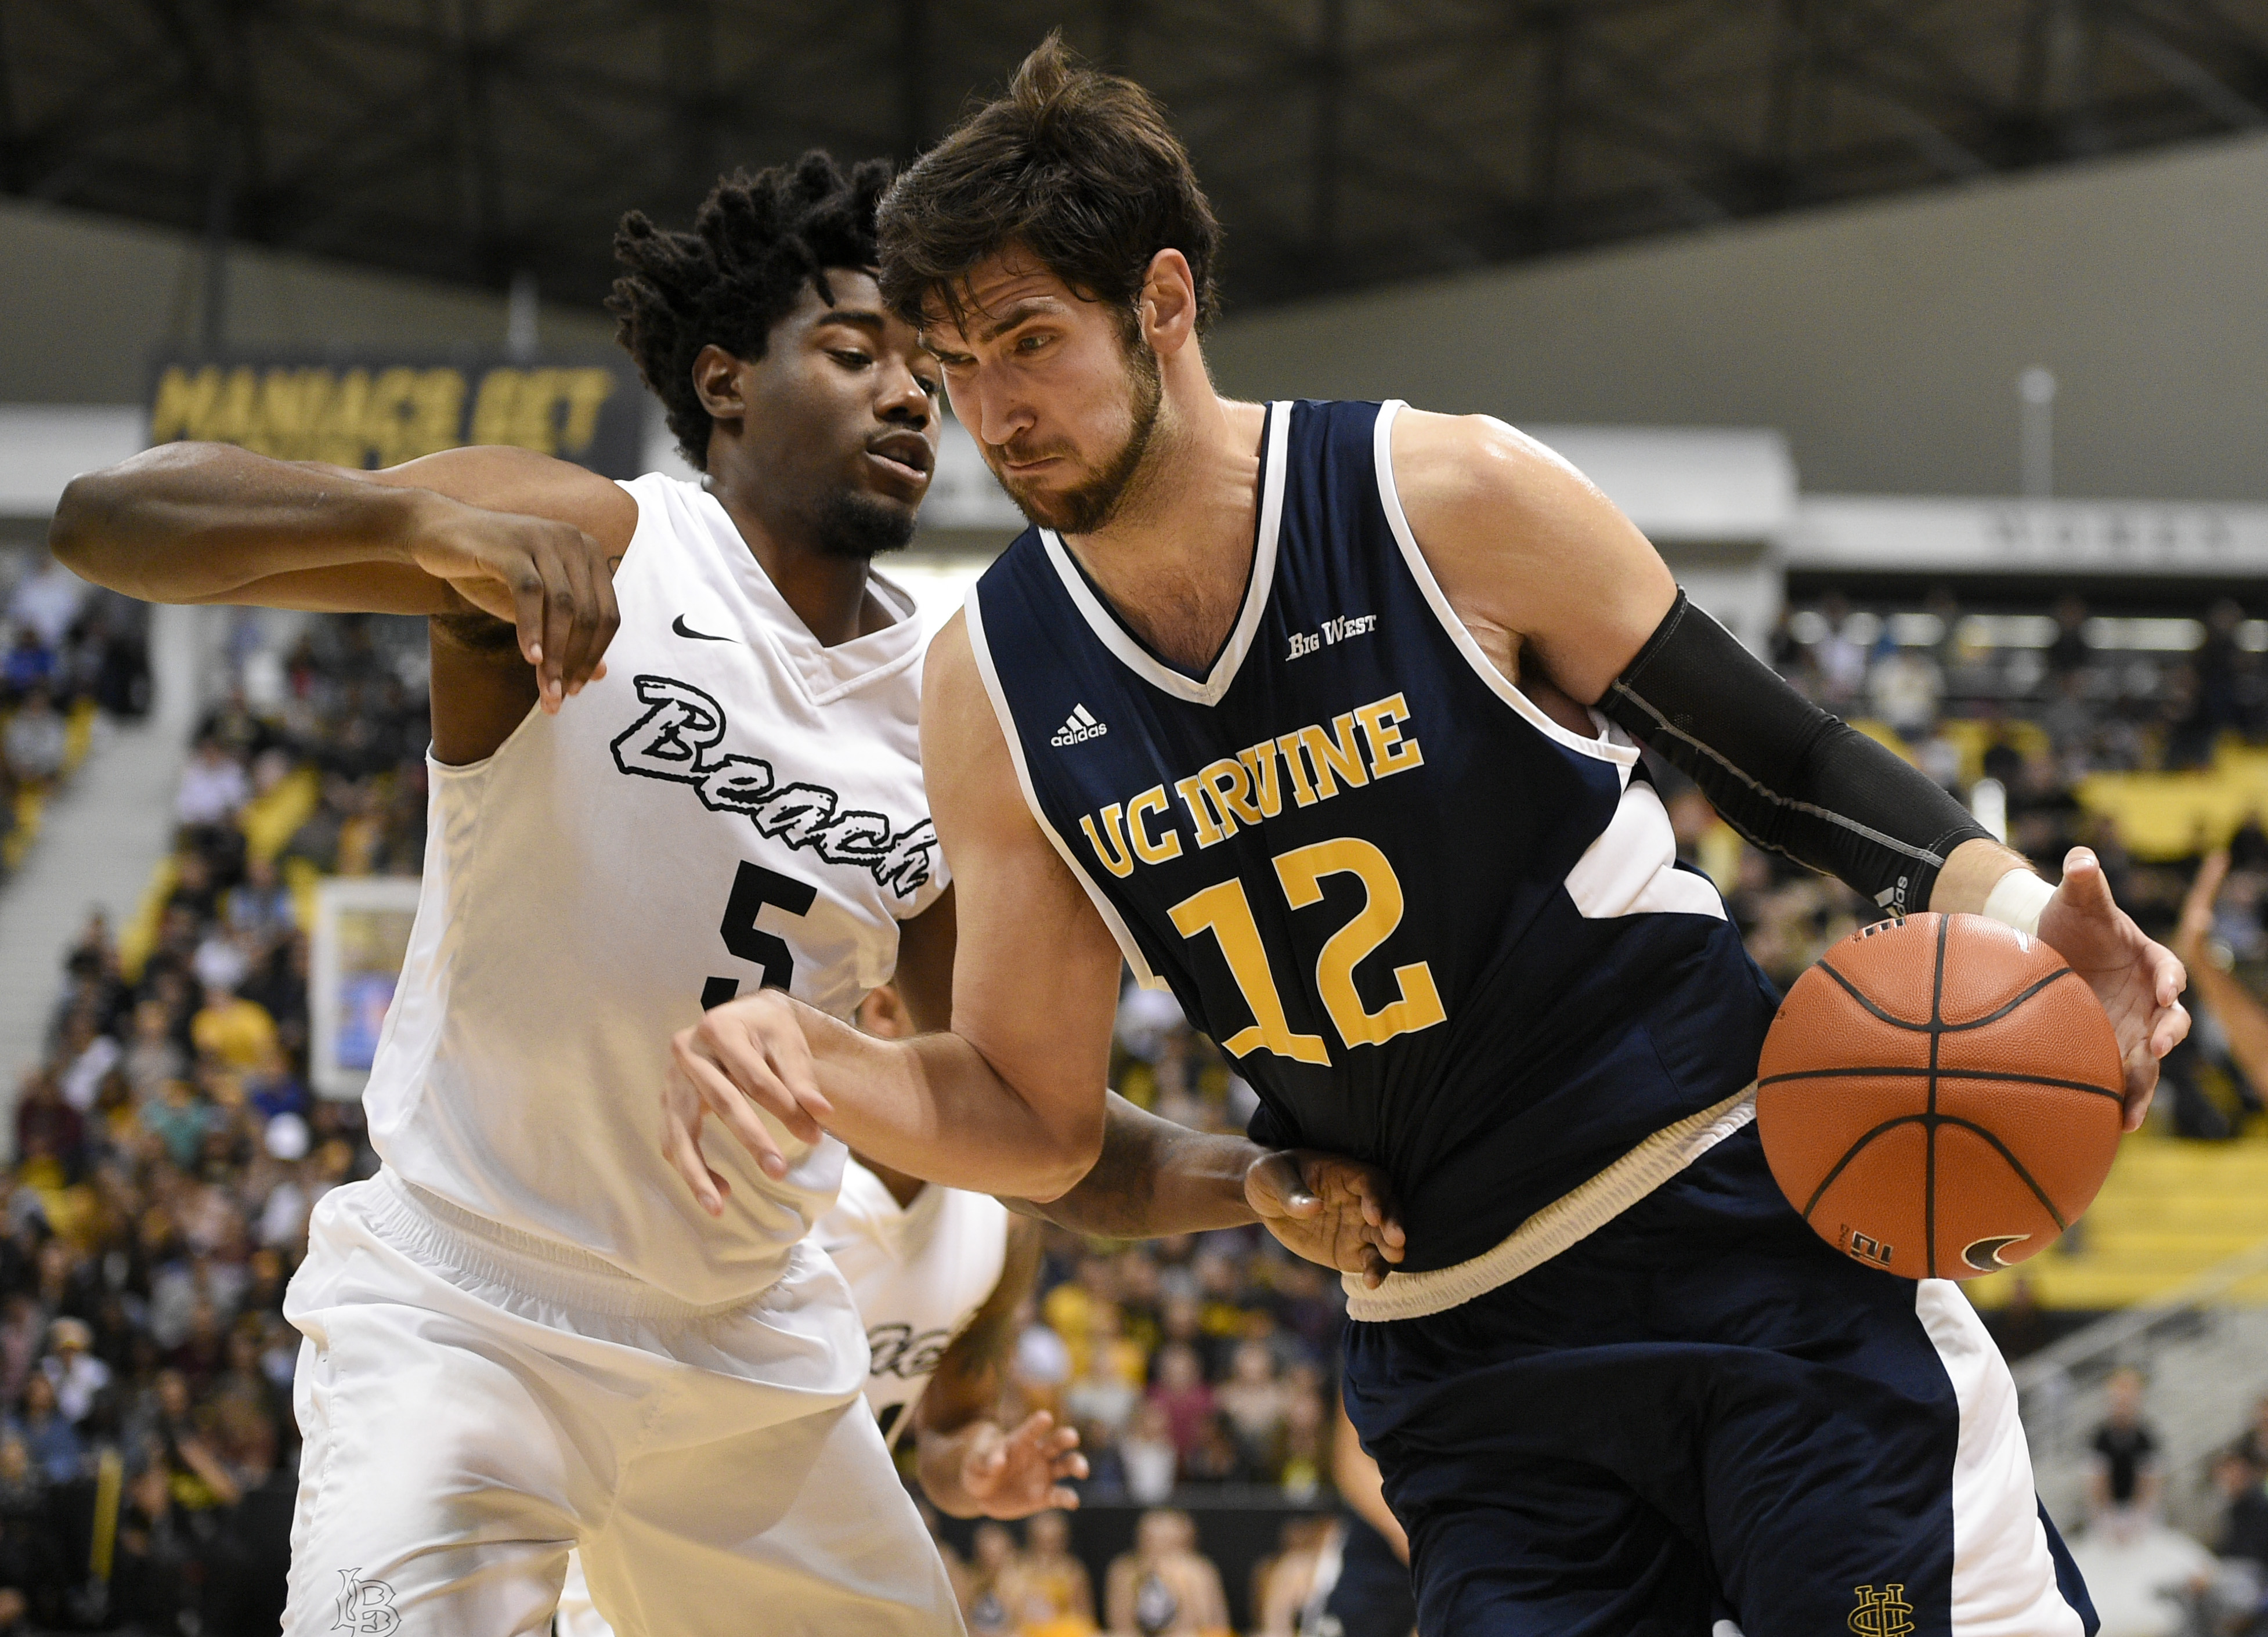 Get the latest news and information for the UC Irvine Anteaters 2018 season schedule scores stats and highlights Find out the latest on your favorite NCAAB teams